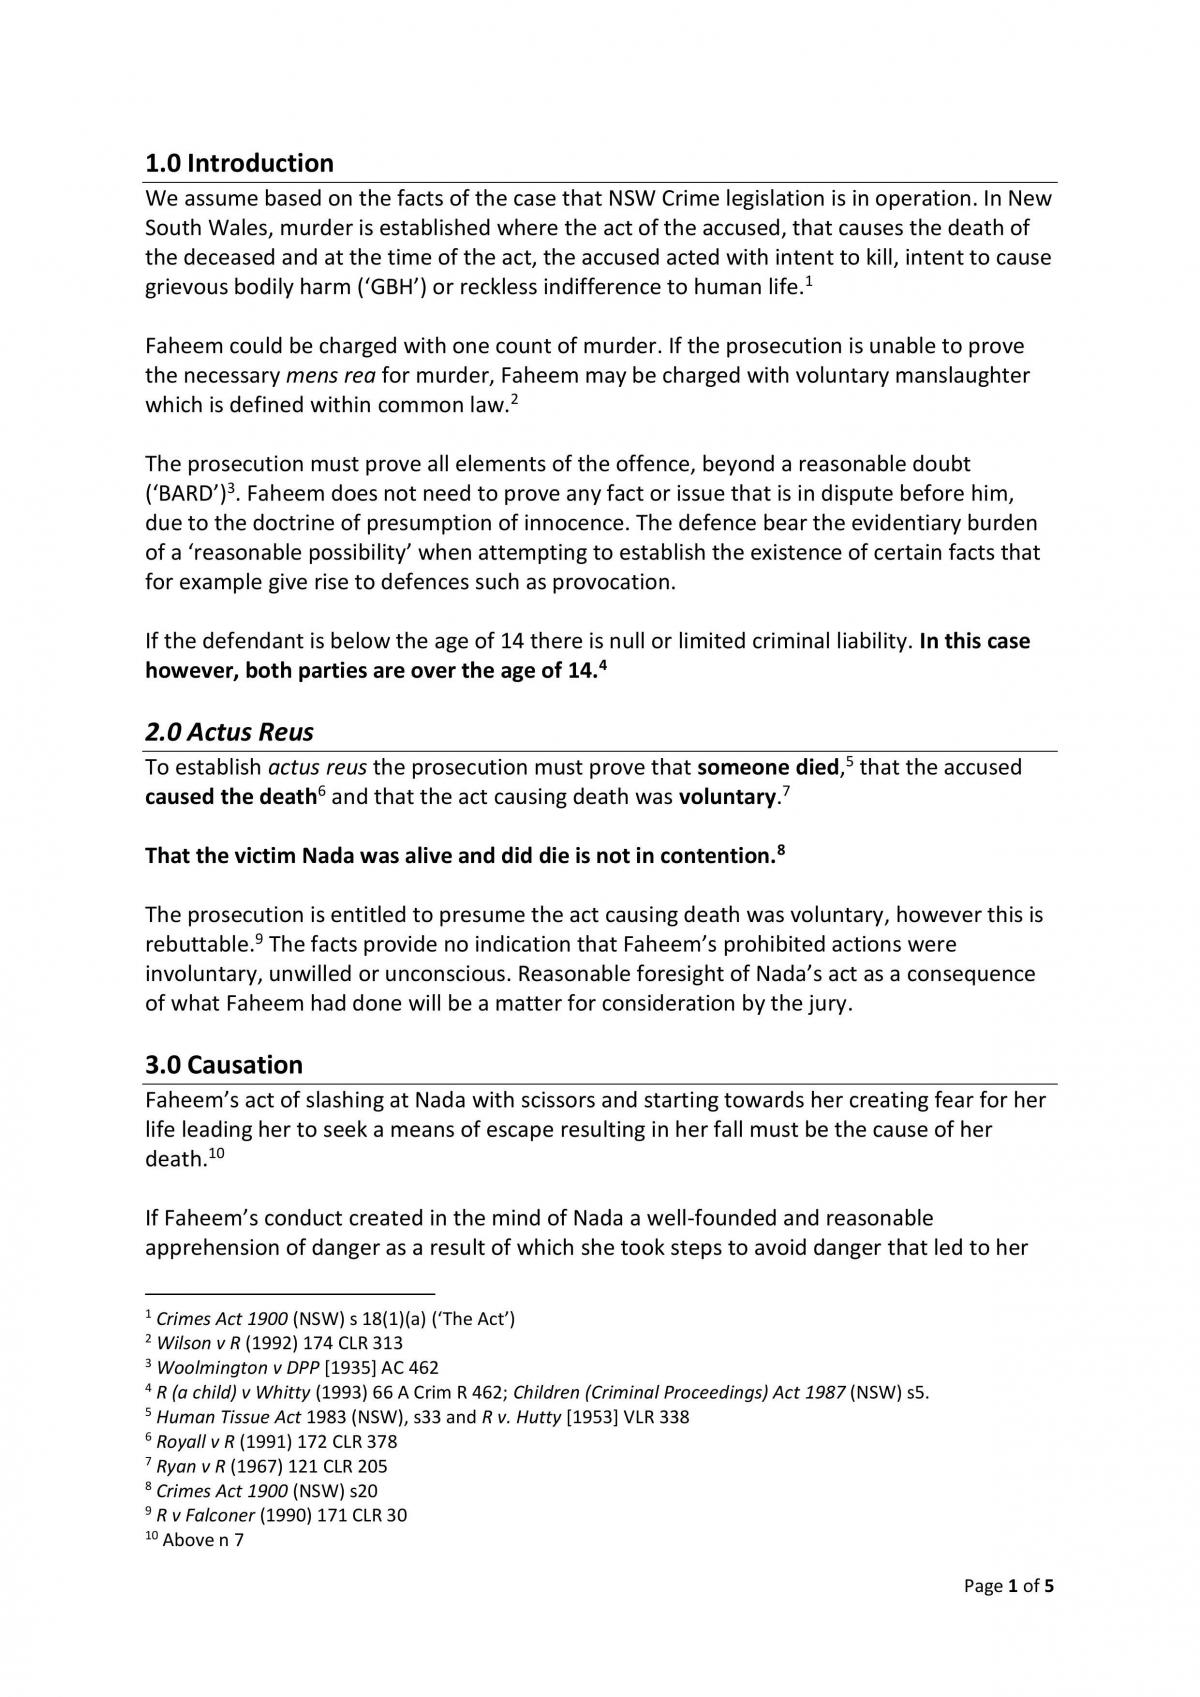 Criminal Law Complete Assignment Spring Semester 2013 - Page 1